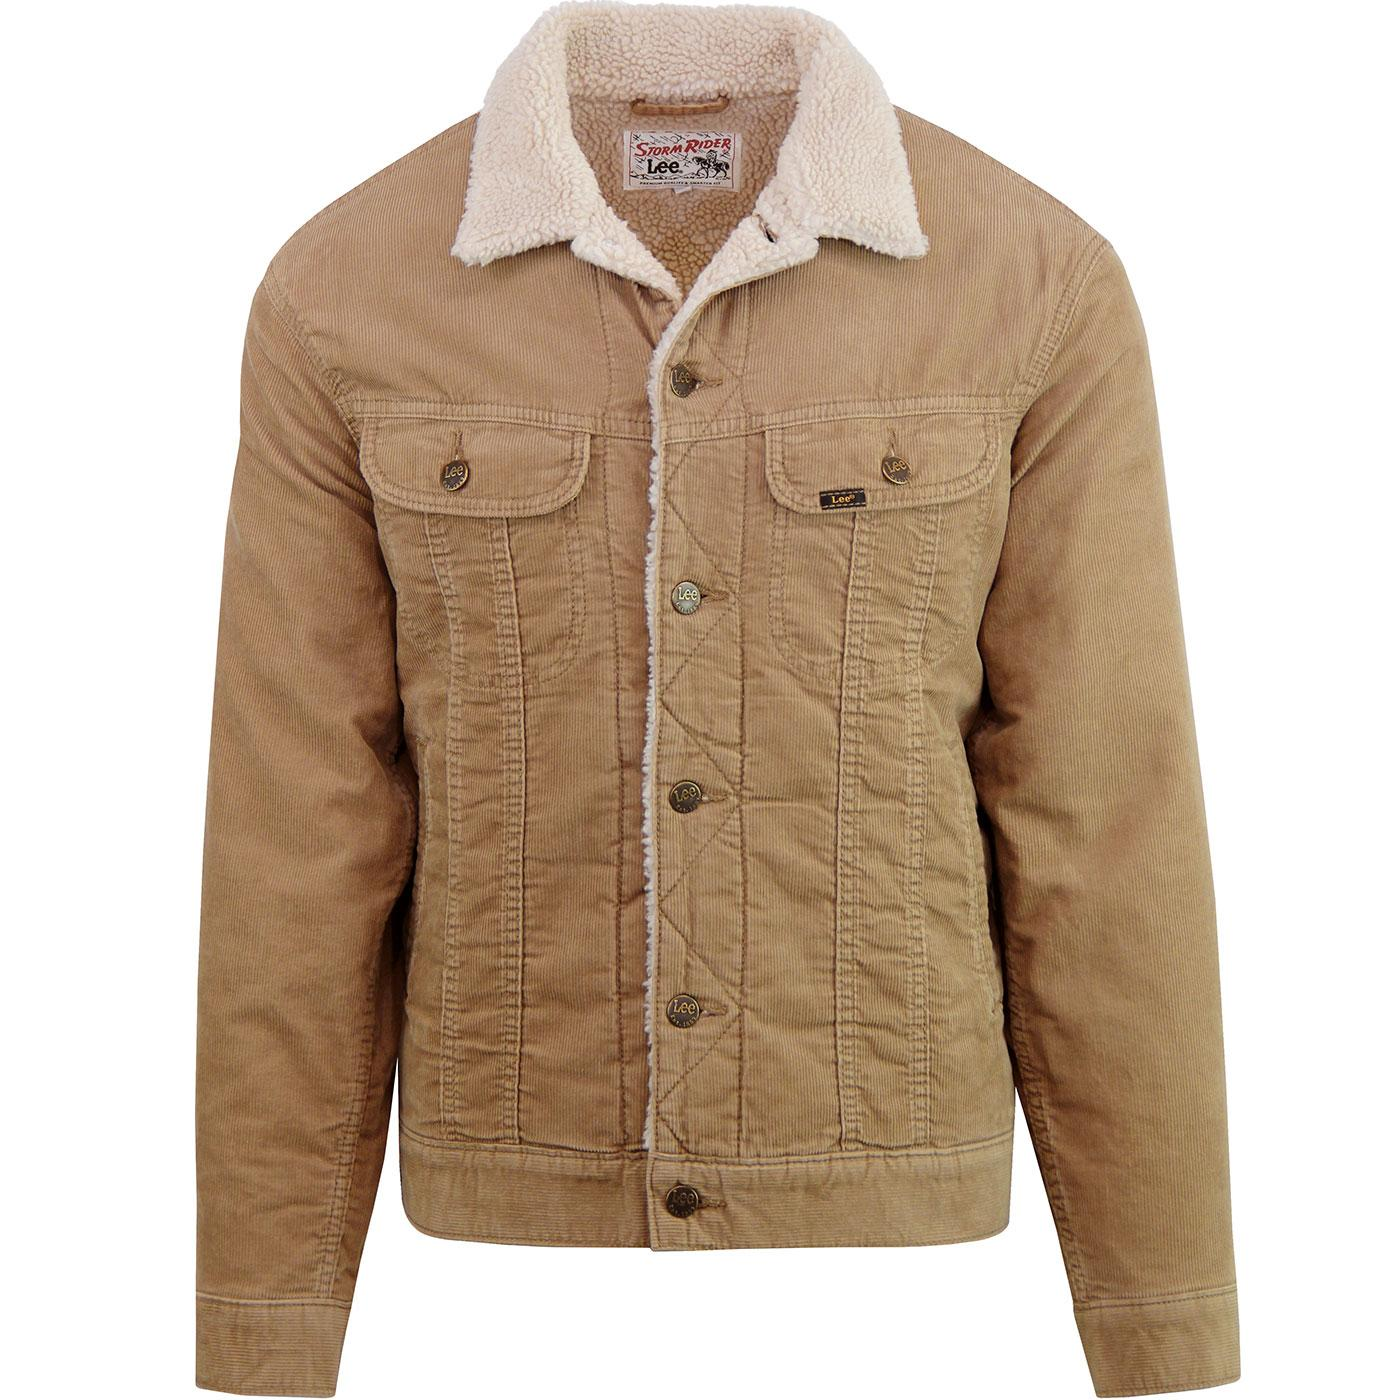 Storm Rider LEE Men's Retro Cord Sherpa Jacket A